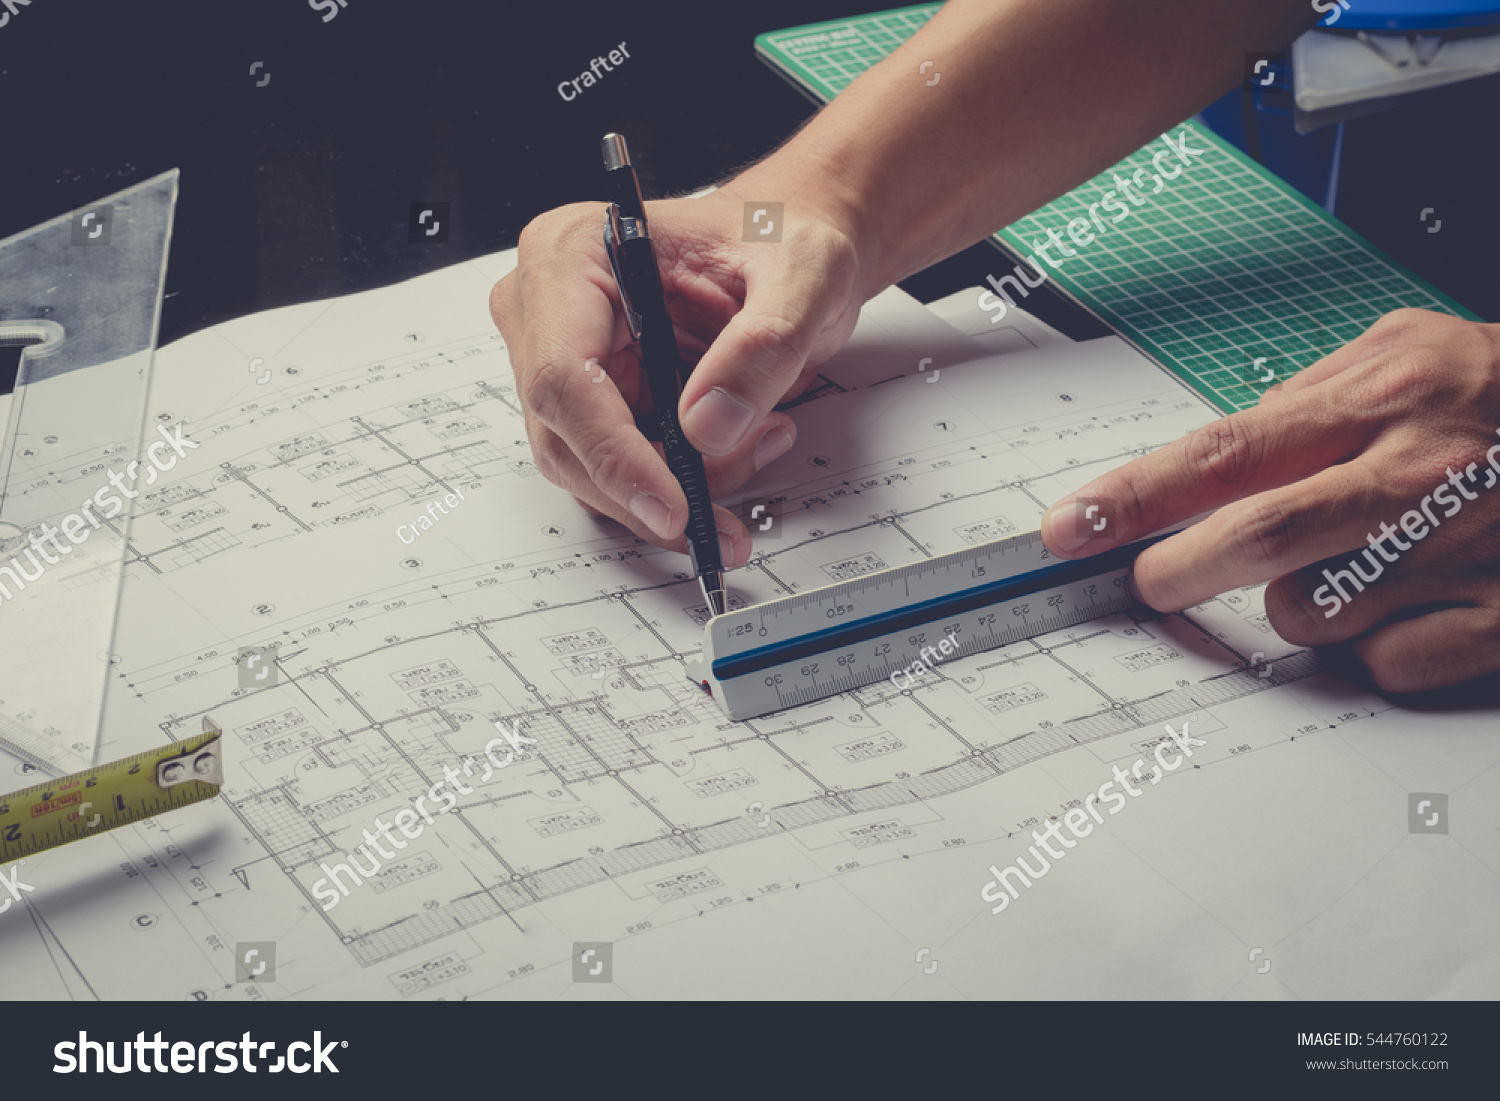 Engineering diagram blueprint paper drafting project stock photo engineering diagram blueprint paper drafting project sketch architecturalvintage filter selective focus malvernweather Image collections